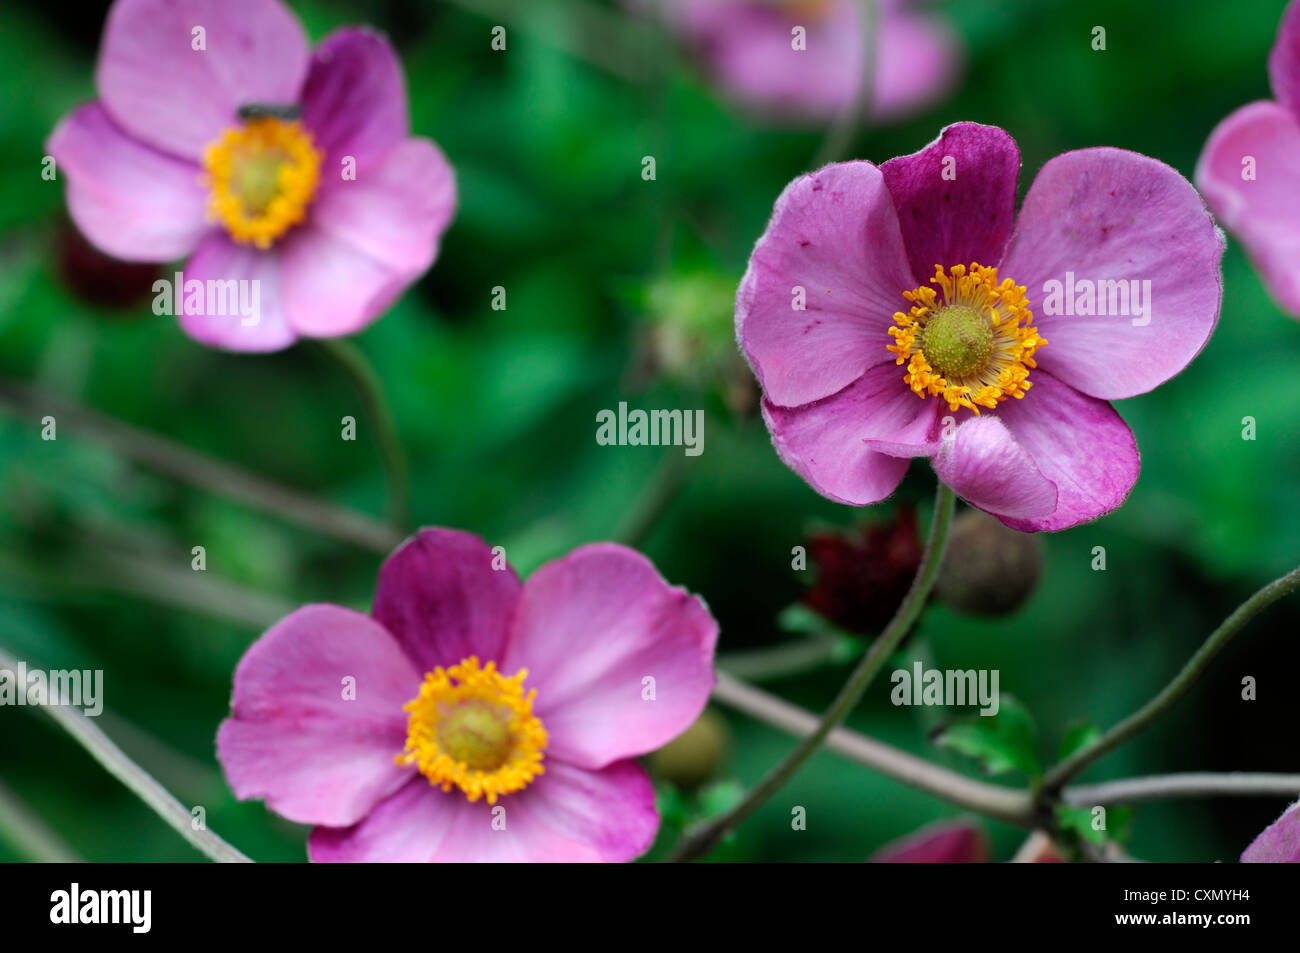 Pink fall anemone flower stock photos pink fall anemone flower anemone hupehensis japanese anemone flower pink purple yellow eye autumn autumnal fall perennial flowering stock mightylinksfo